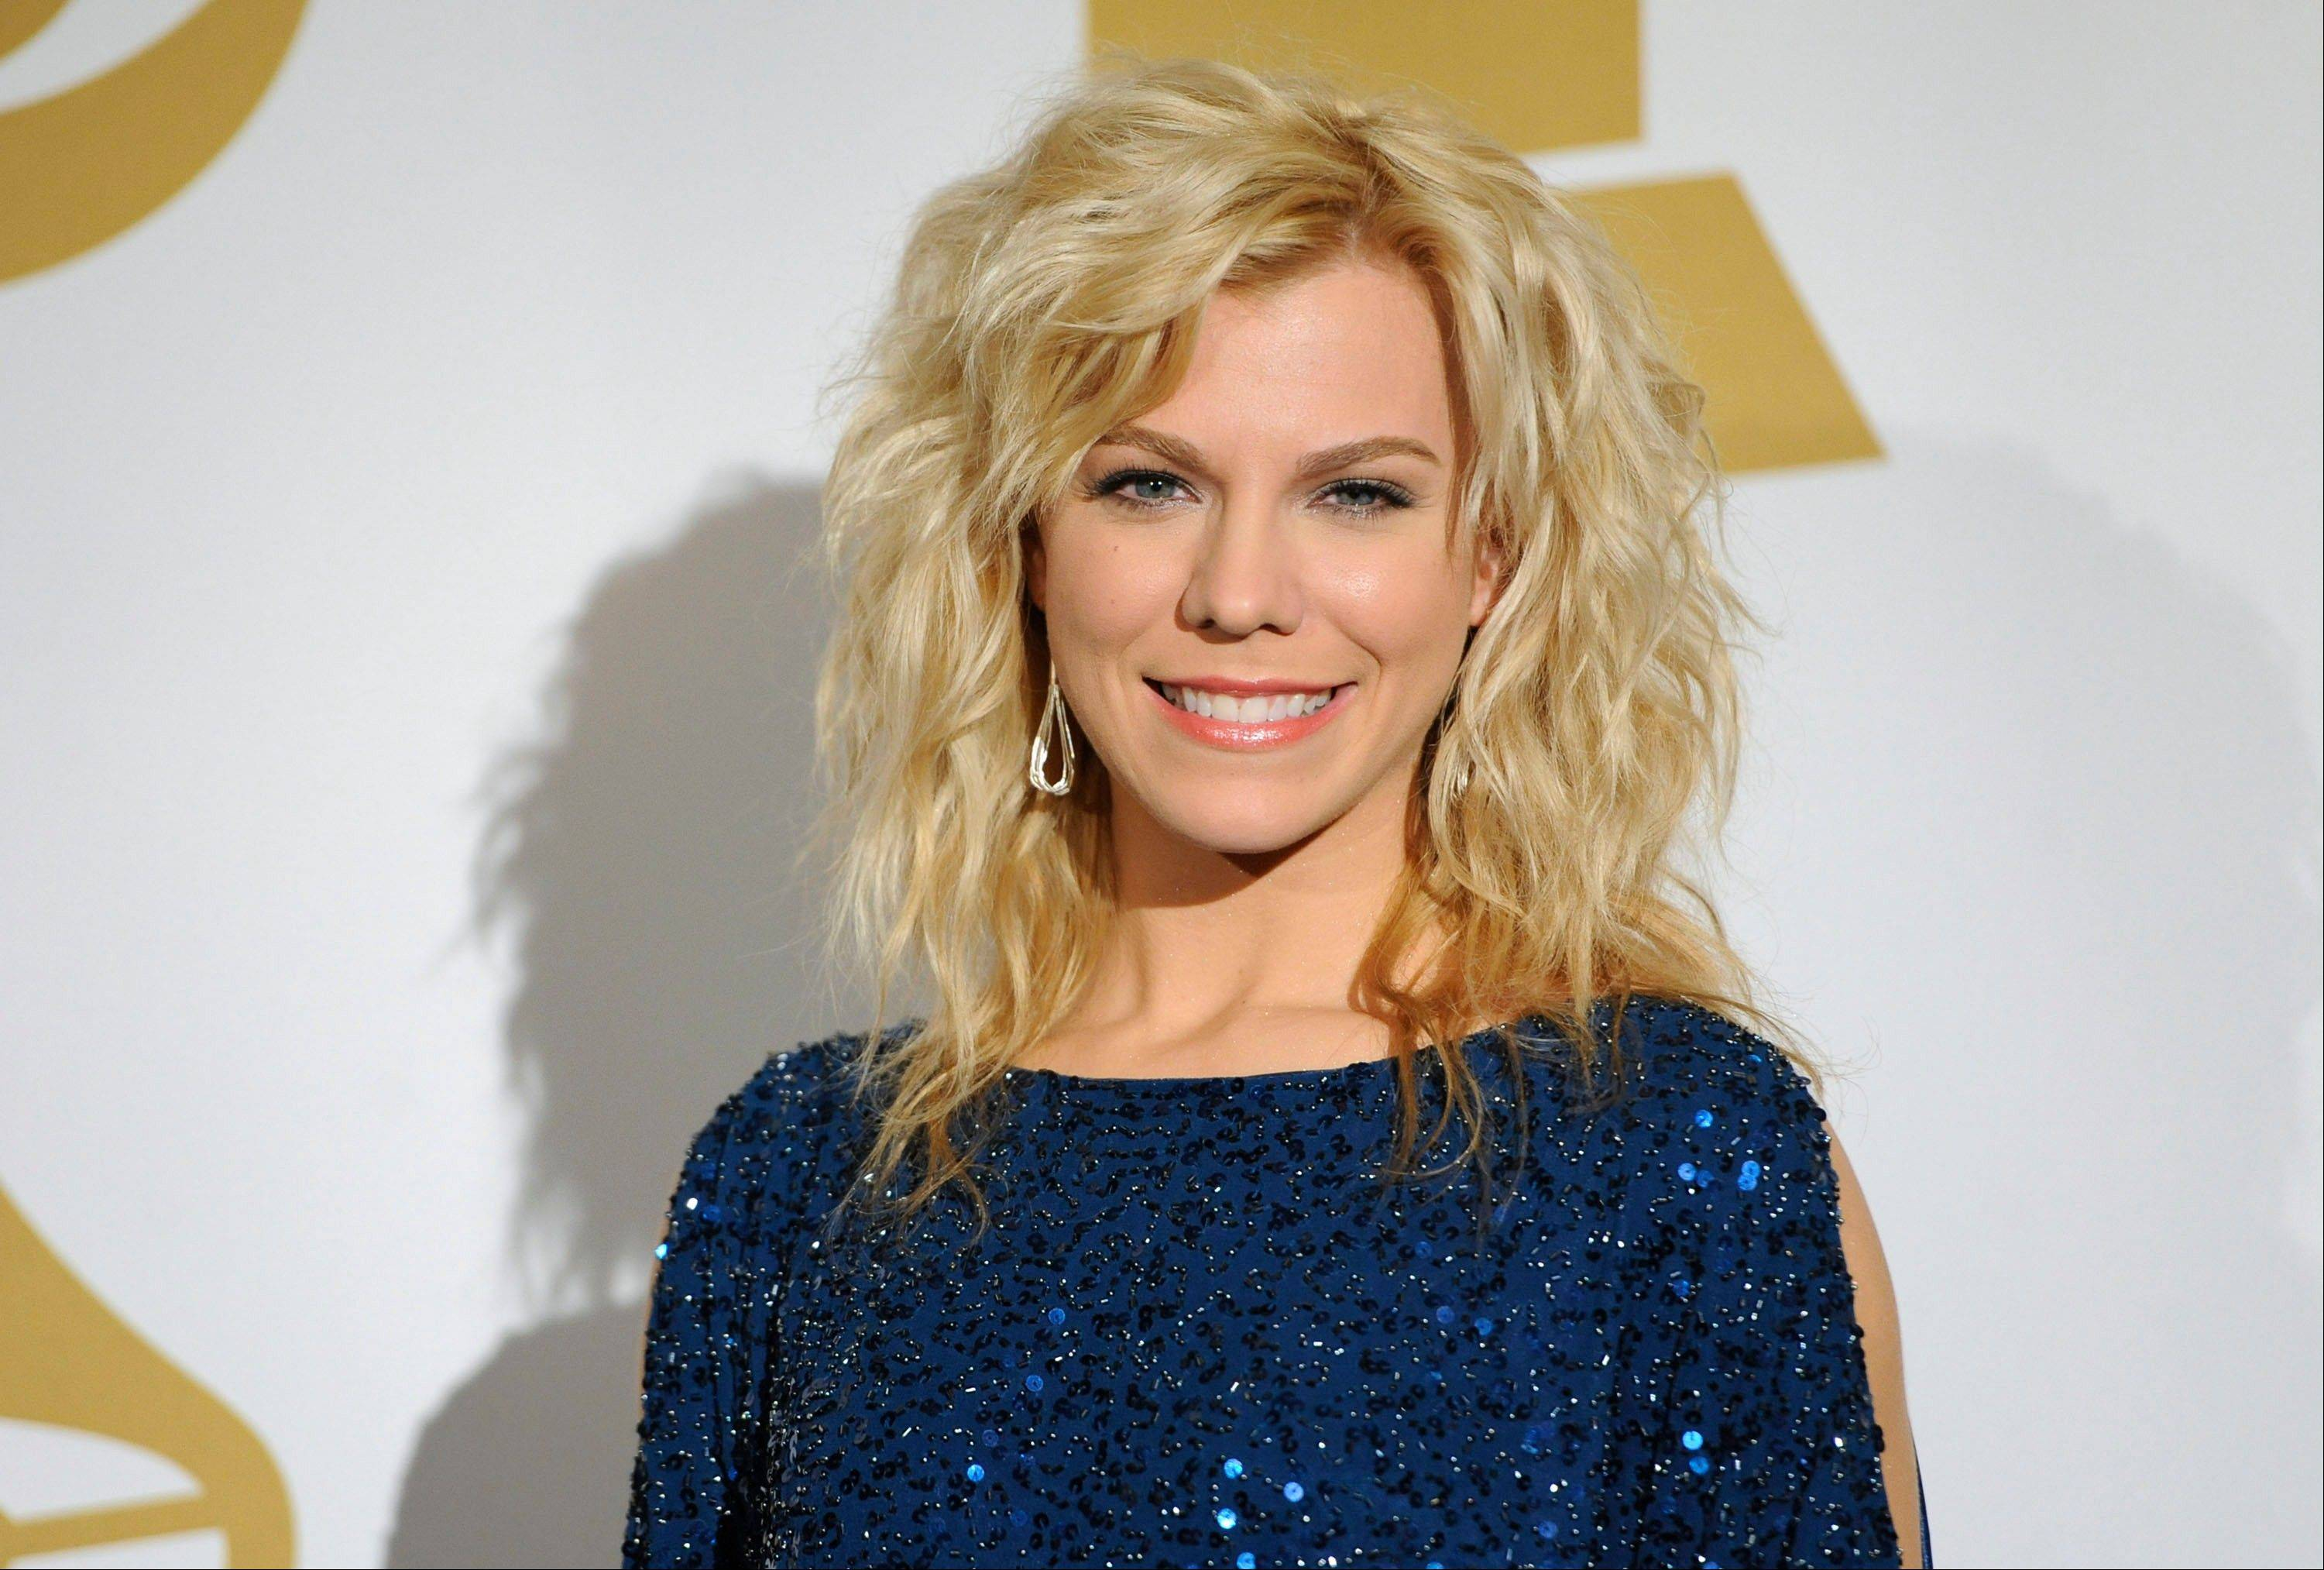 Kimberly Perry of The Band Perry backstage Wednesday at the Grammy Nominations Concert in Los Angeles.